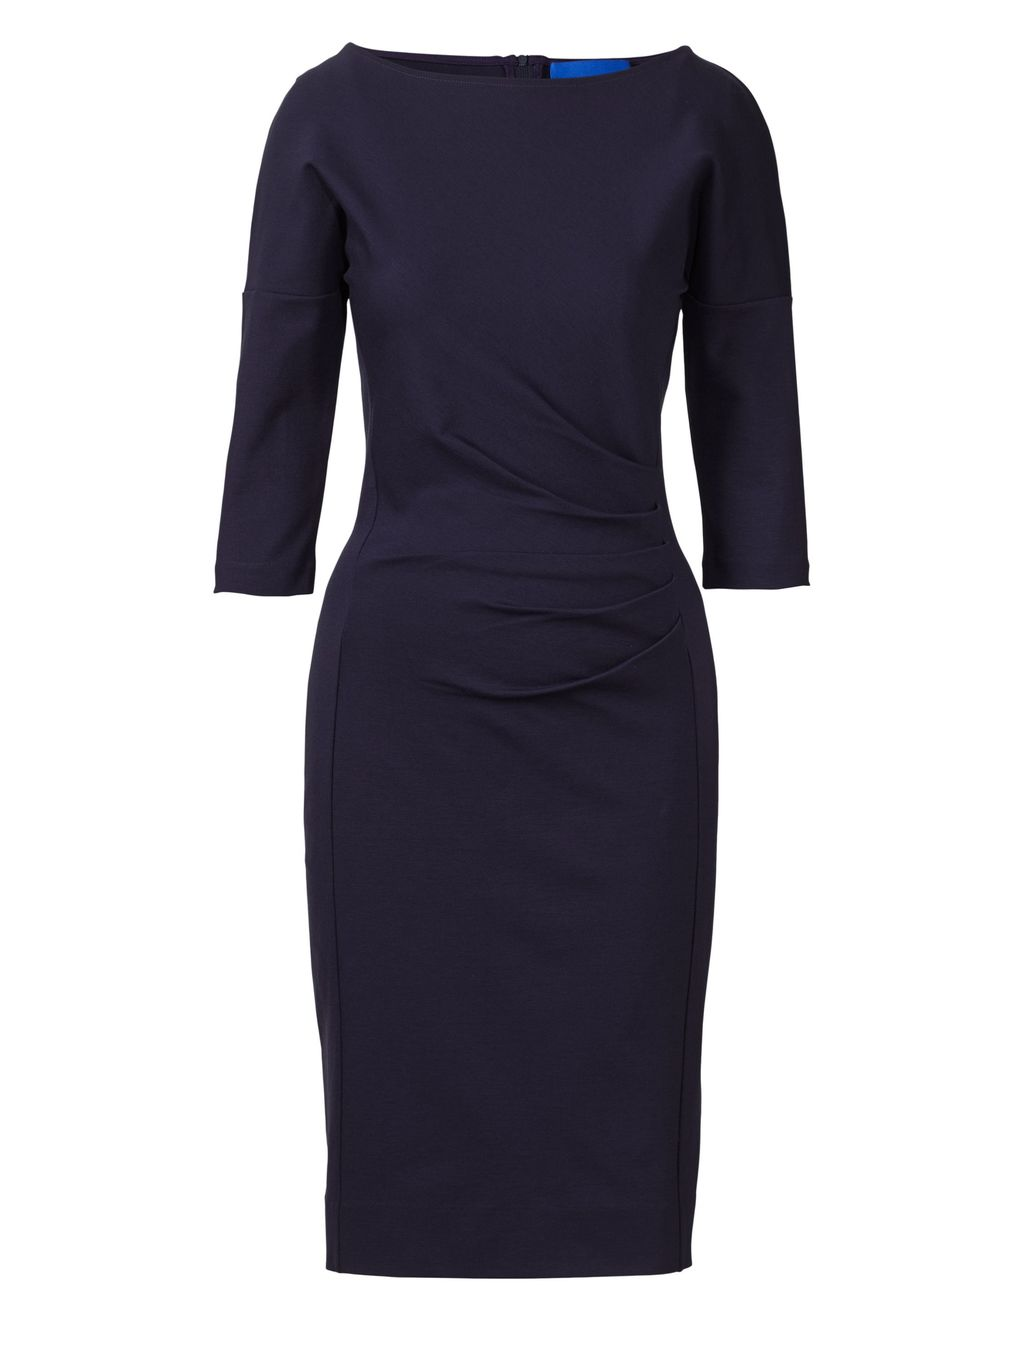 Miracle Dress, Navy - style: shift; neckline: slash/boat neckline; pattern: plain; predominant colour: navy; occasions: evening, work, creative work; length: just above the knee; fit: body skimming; fibres: viscose/rayon - stretch; sleeve length: 3/4 length; sleeve style: standard; pattern type: fabric; texture group: jersey - stretchy/drapey; season: s/s 2016; wardrobe: investment